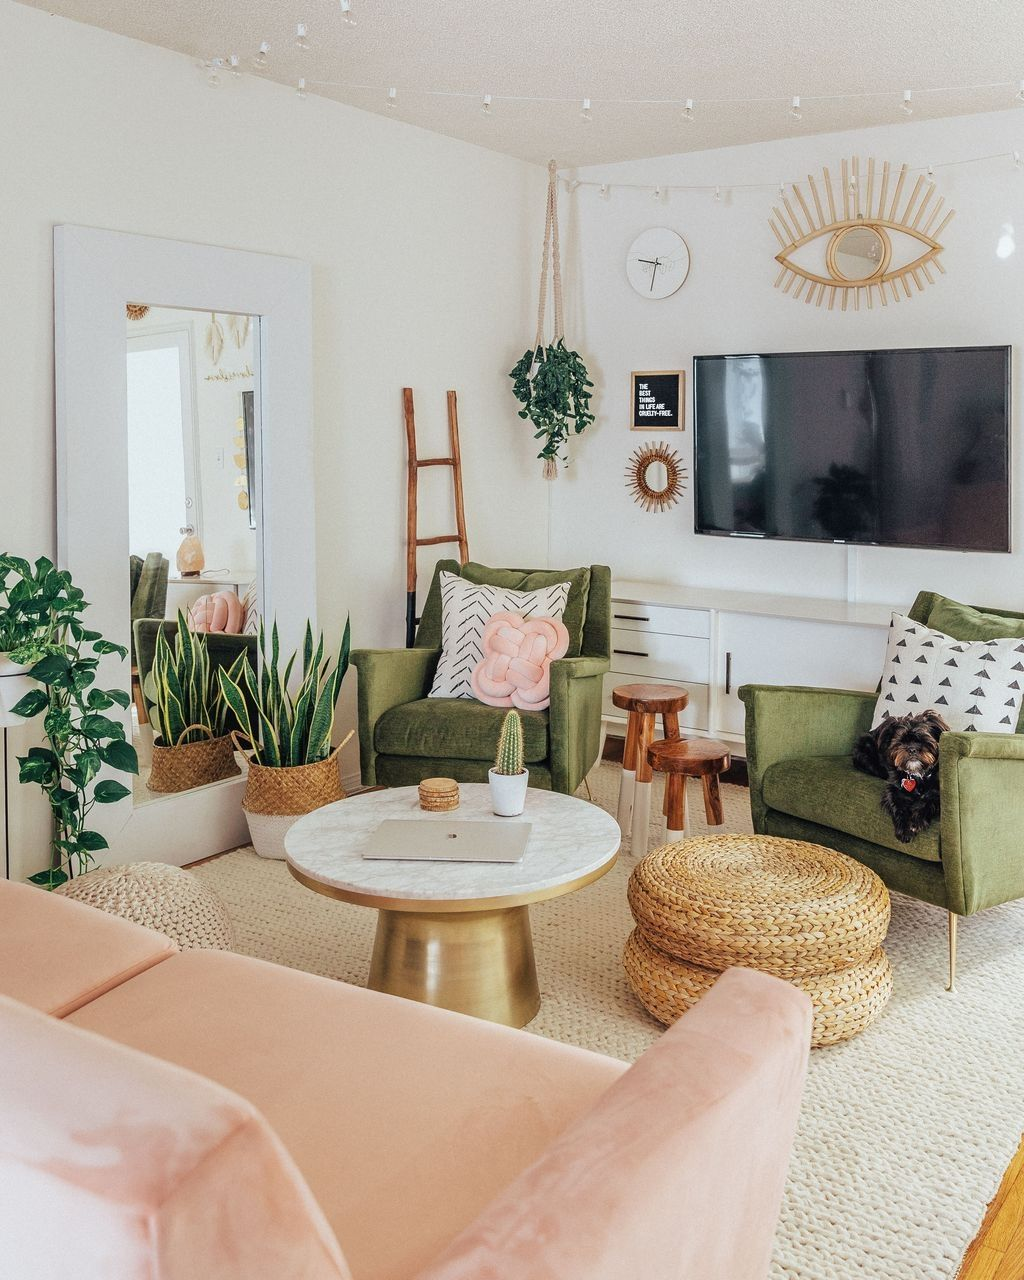 cool mid century living room decor ideas also unique diy small apartment decorating on  budget rh br pinterest